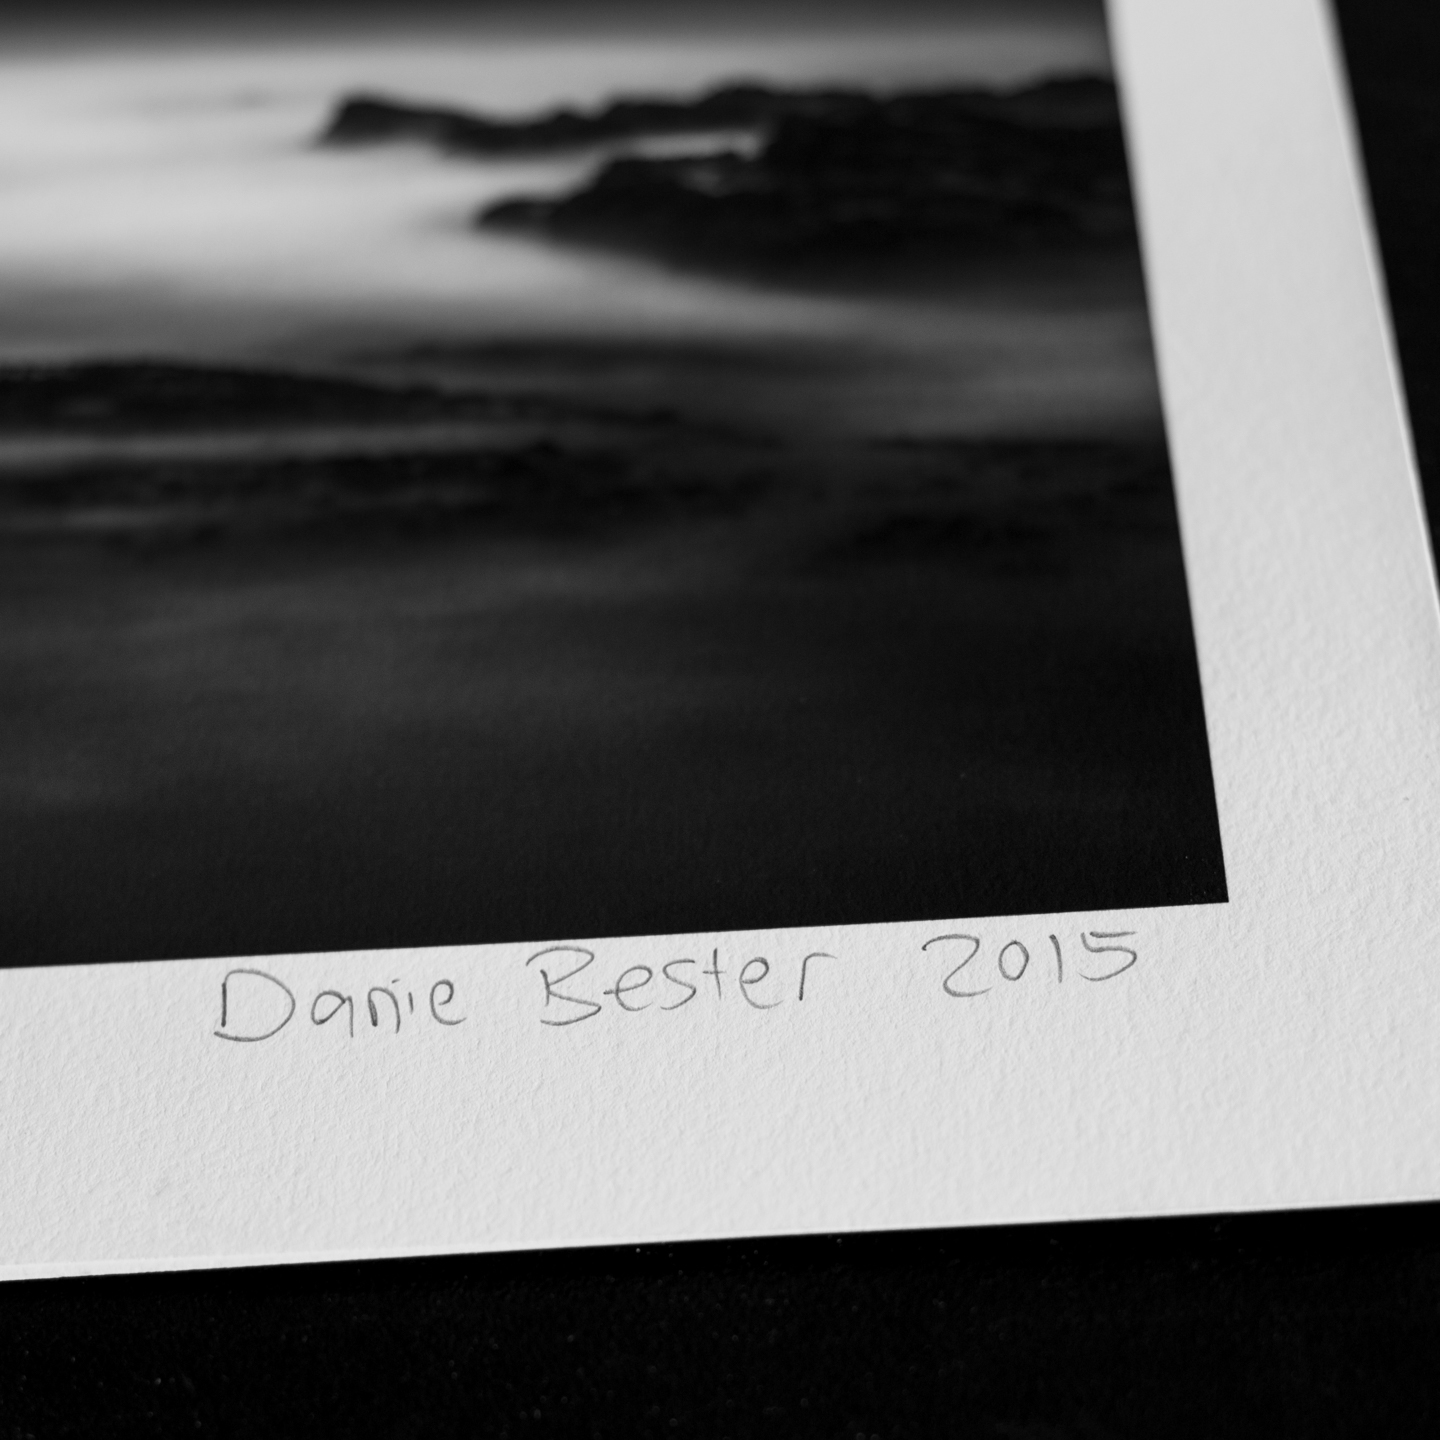 Danie Bester limited edition fine art prints are numbered and signed